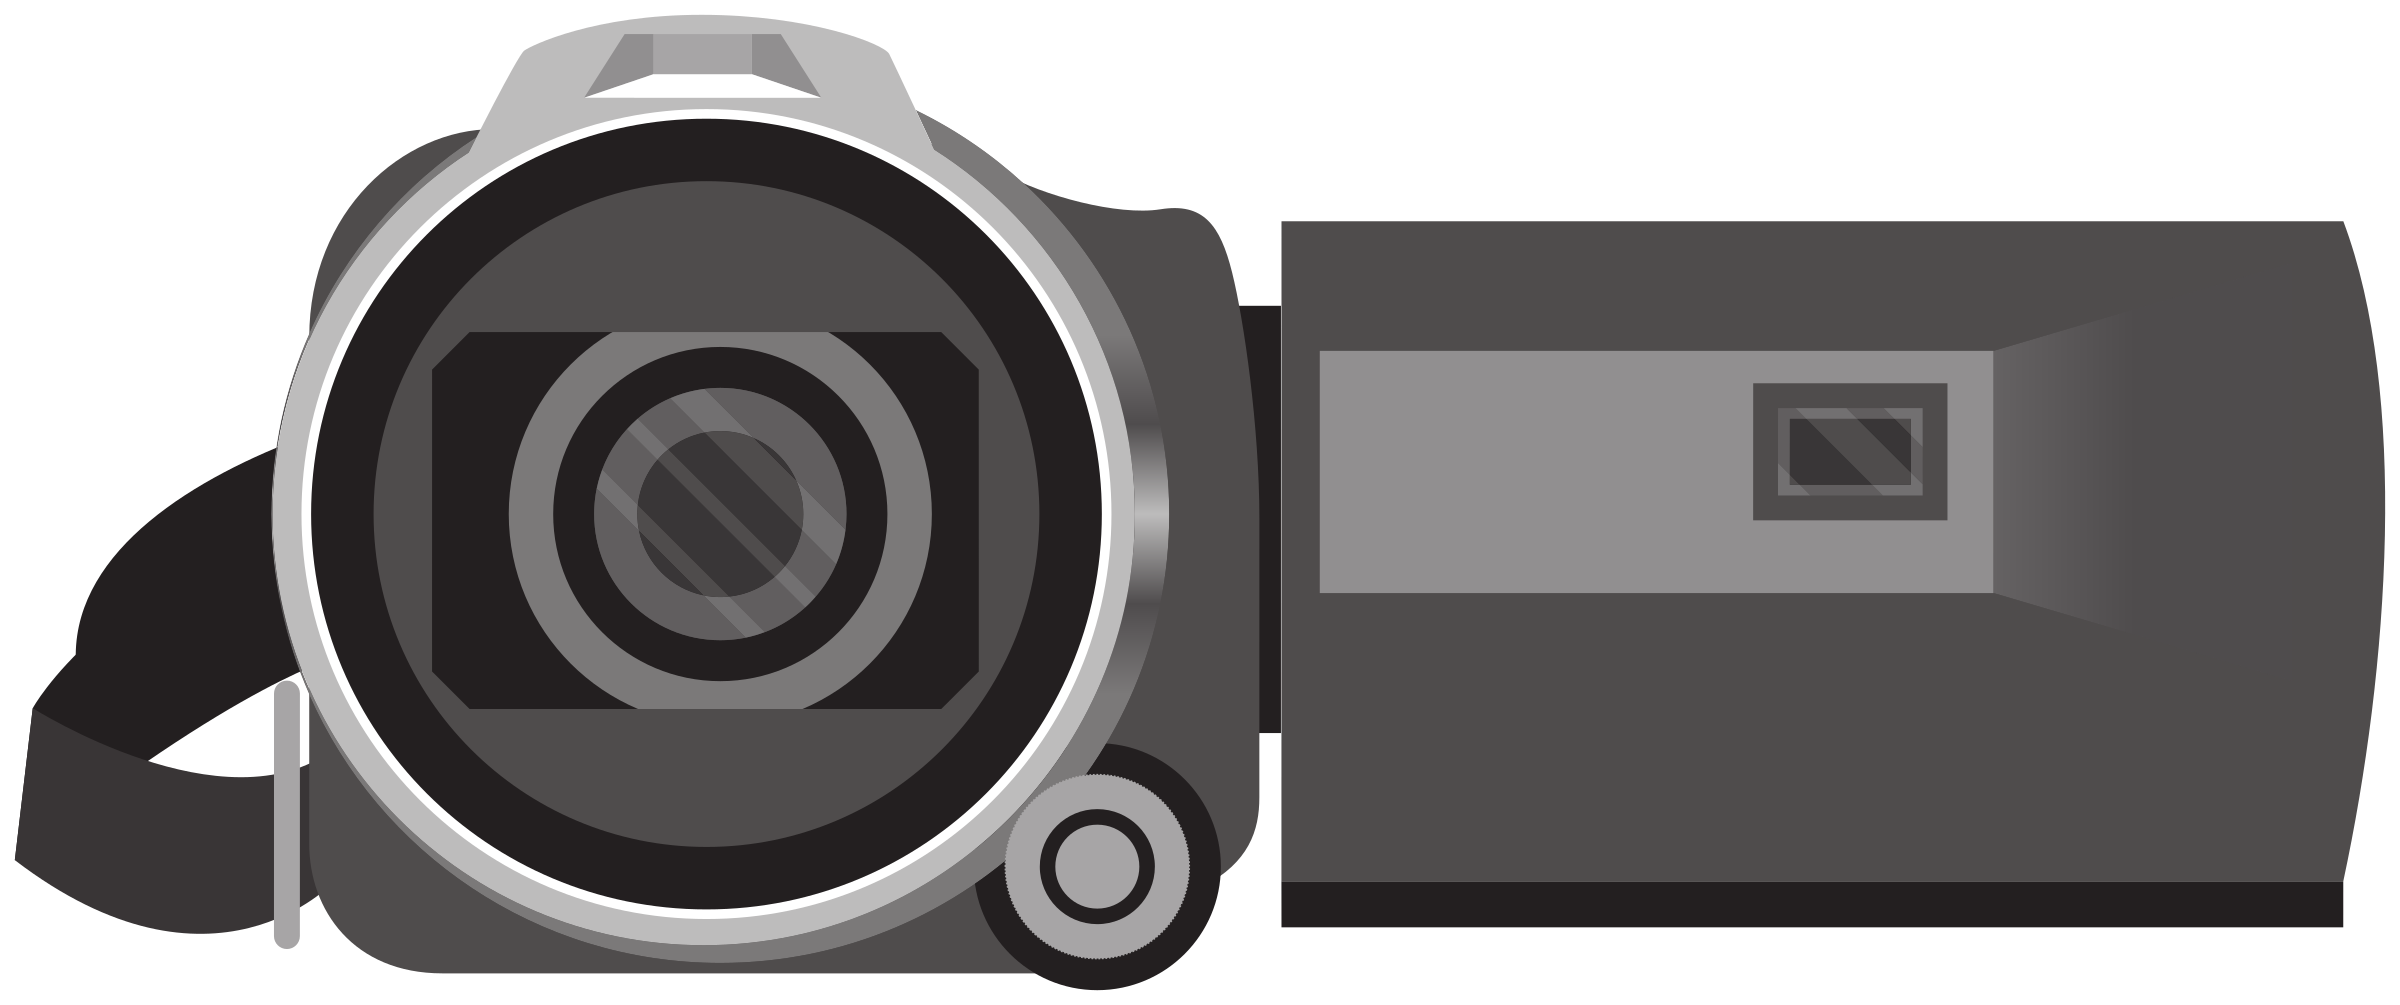 Camcorder - video camera by Juhele